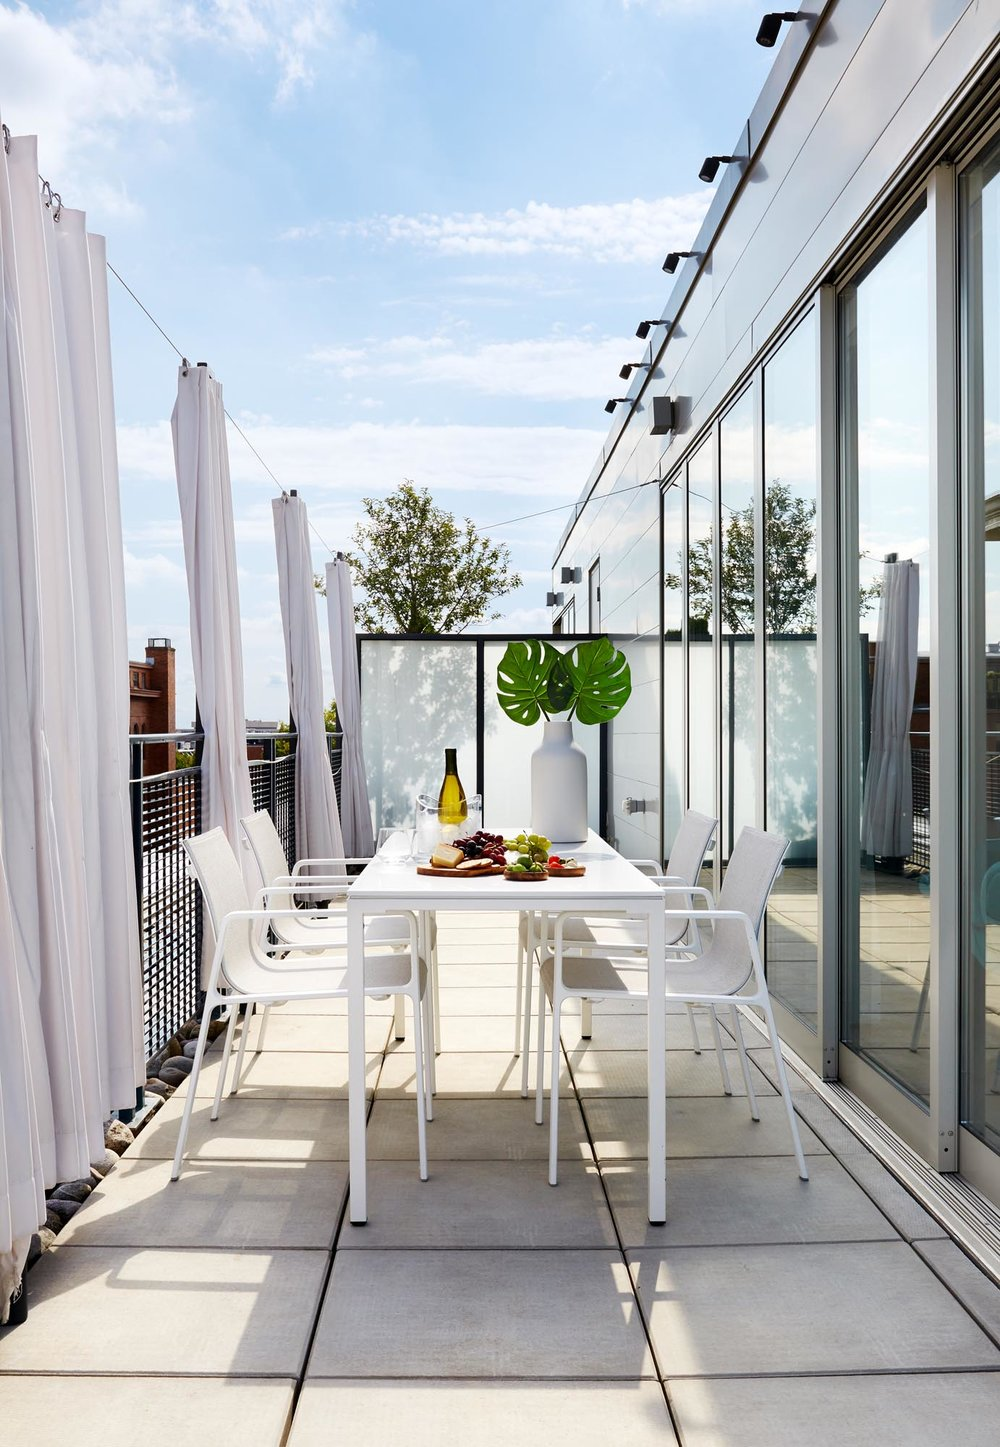 Bright outdoor patio with white tables and chairs